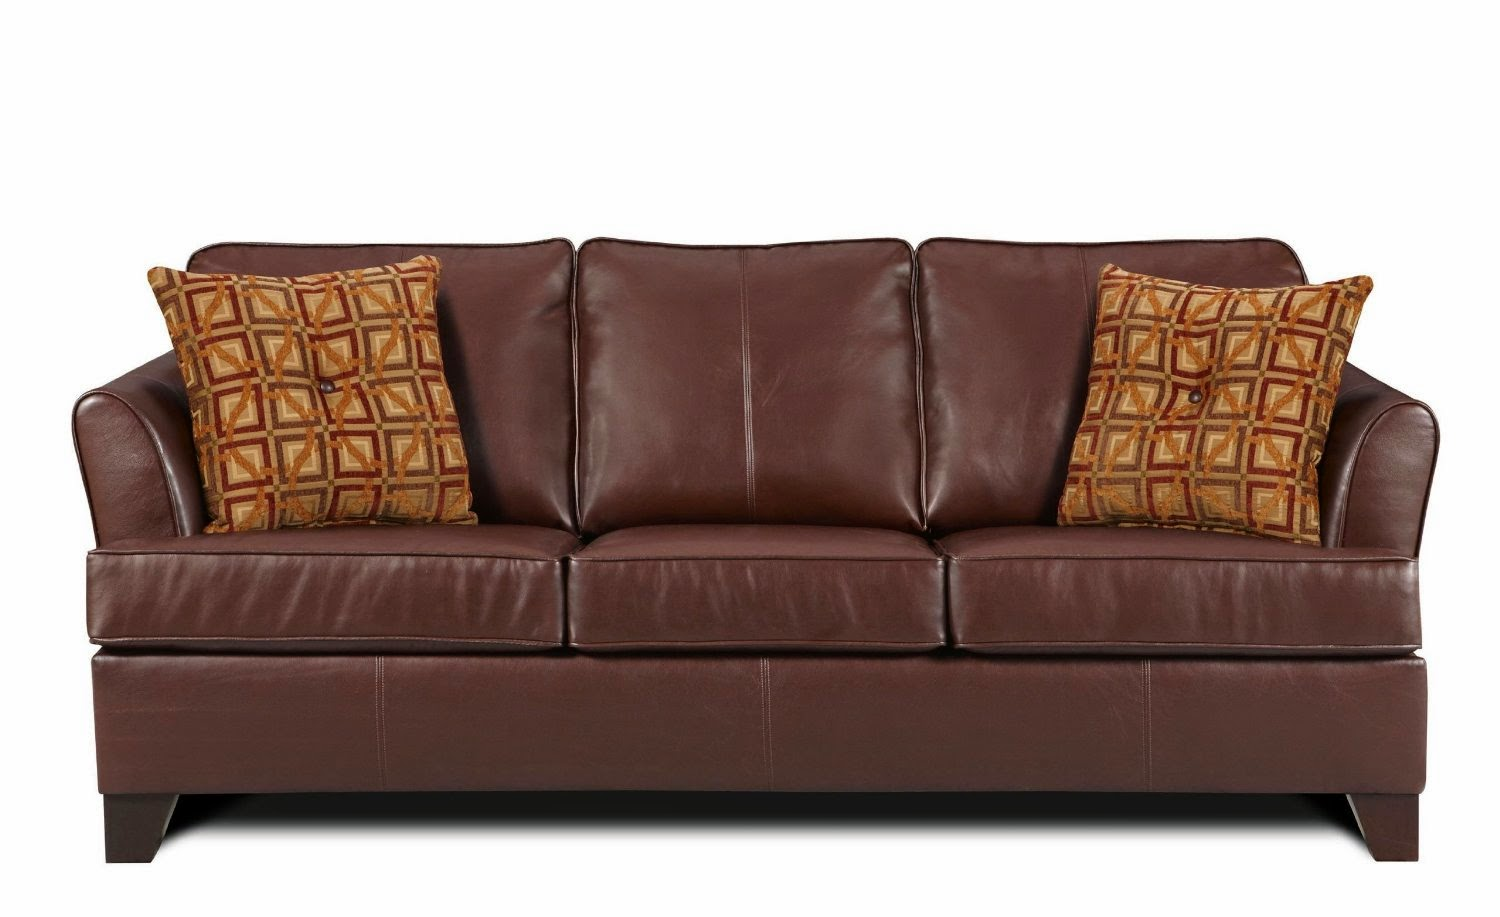 simmons bonded leather sofa designs for bedroom brown couch